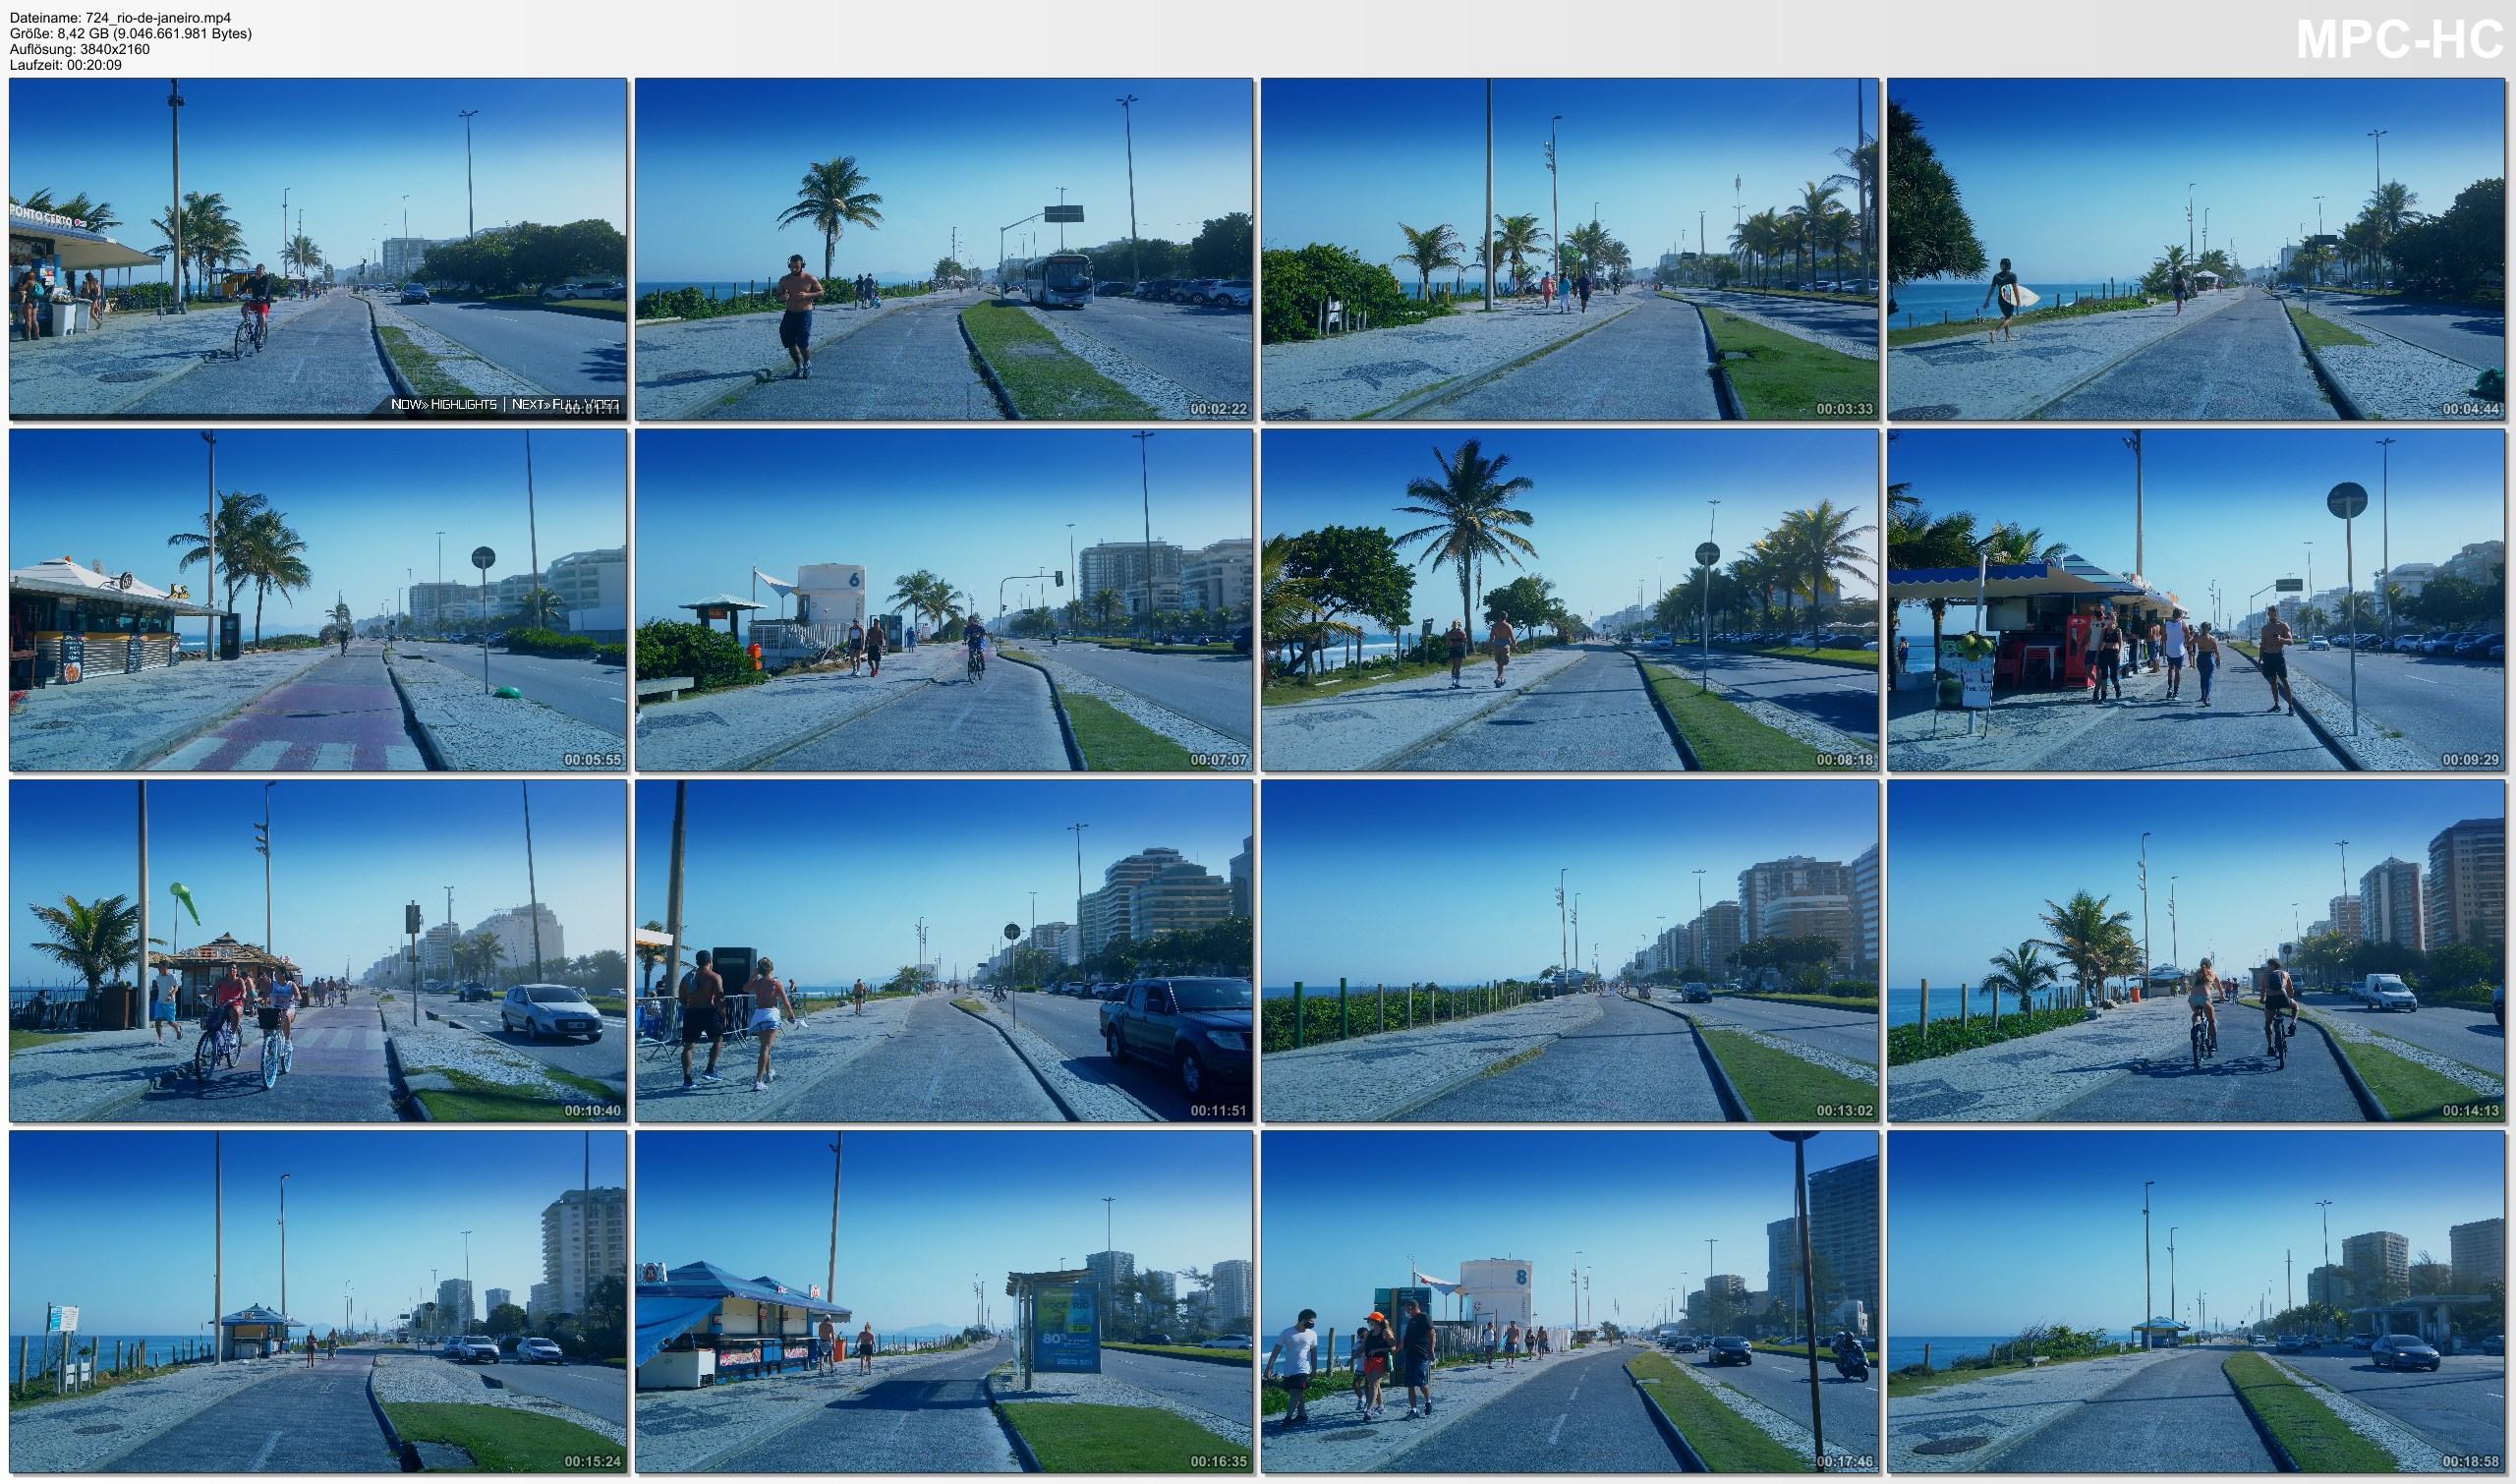 Pictures from Video 【4K】20 MIN RELAXATION FILM: «Cycling in Barra da Tijuca (Brazil)» Ultra HD (for 2160p Ambient TV)